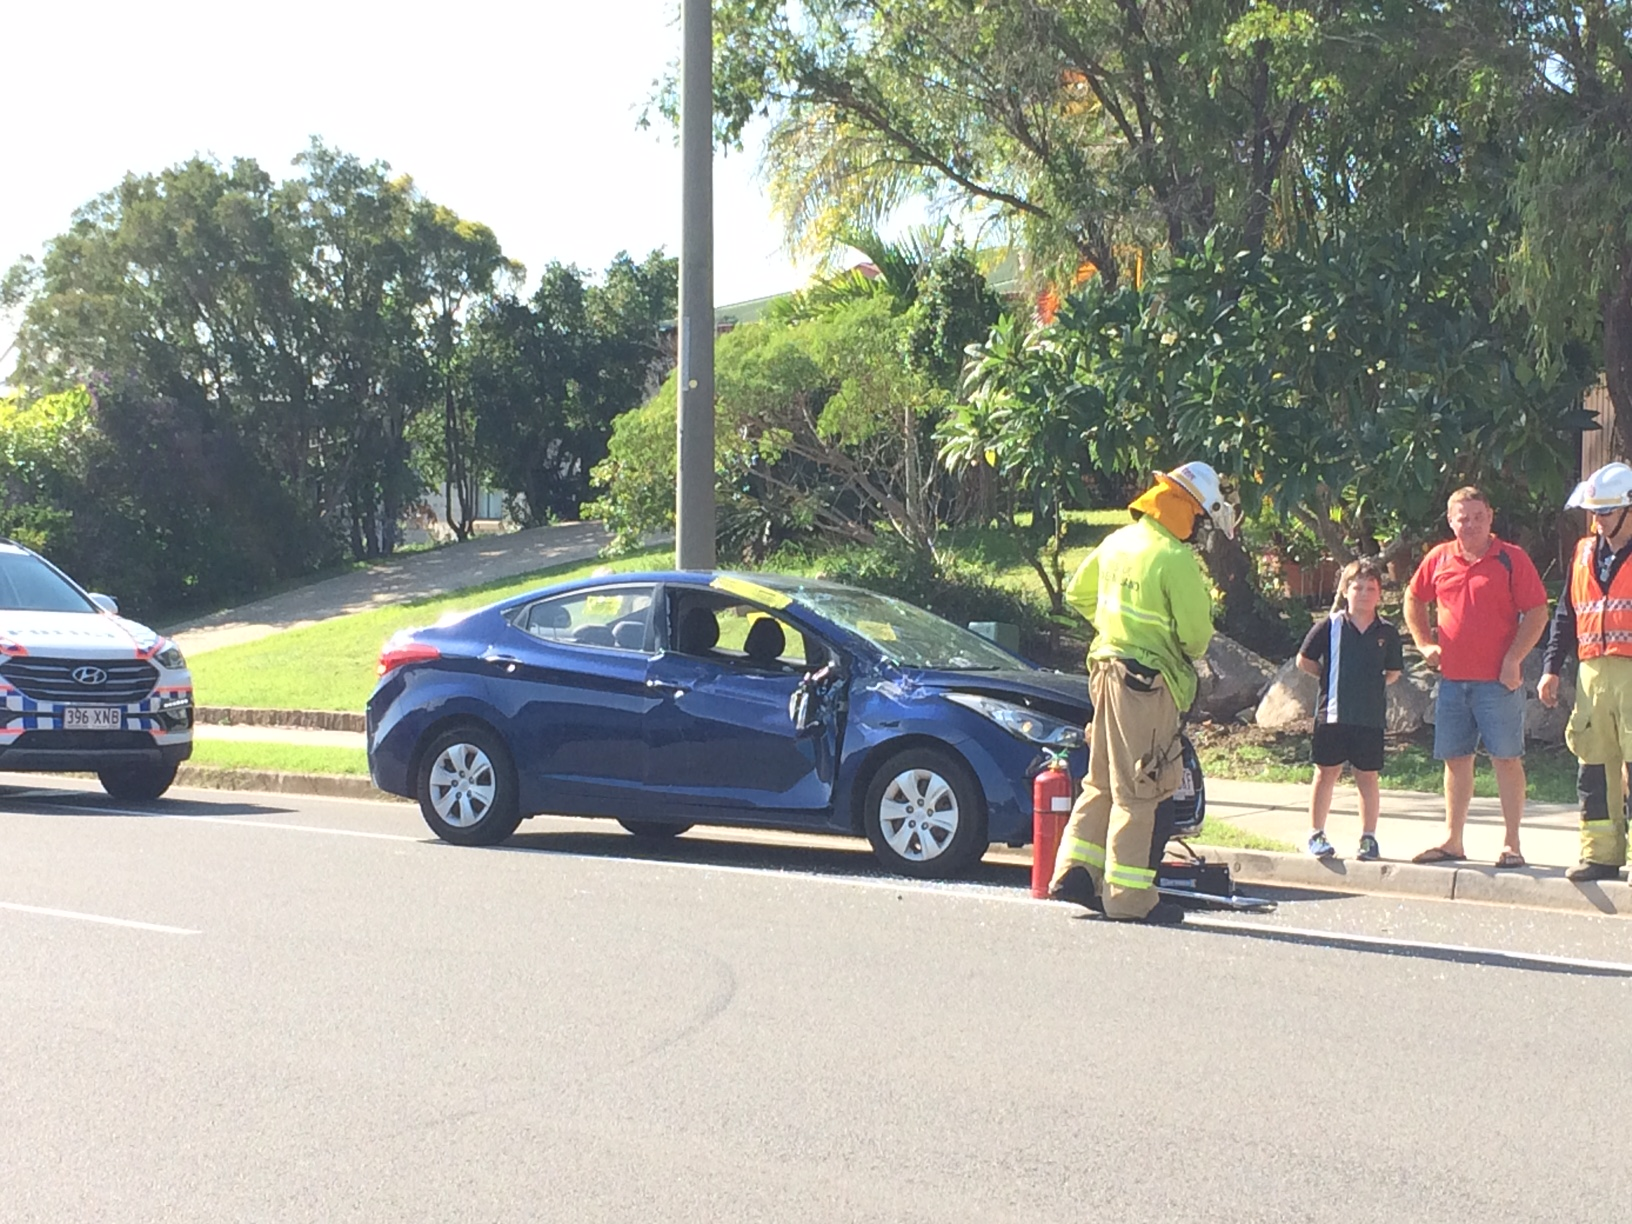 Paramedics are assessing one patient after a blue Hyundai was T-boned by another car in a two-vehicle crash.